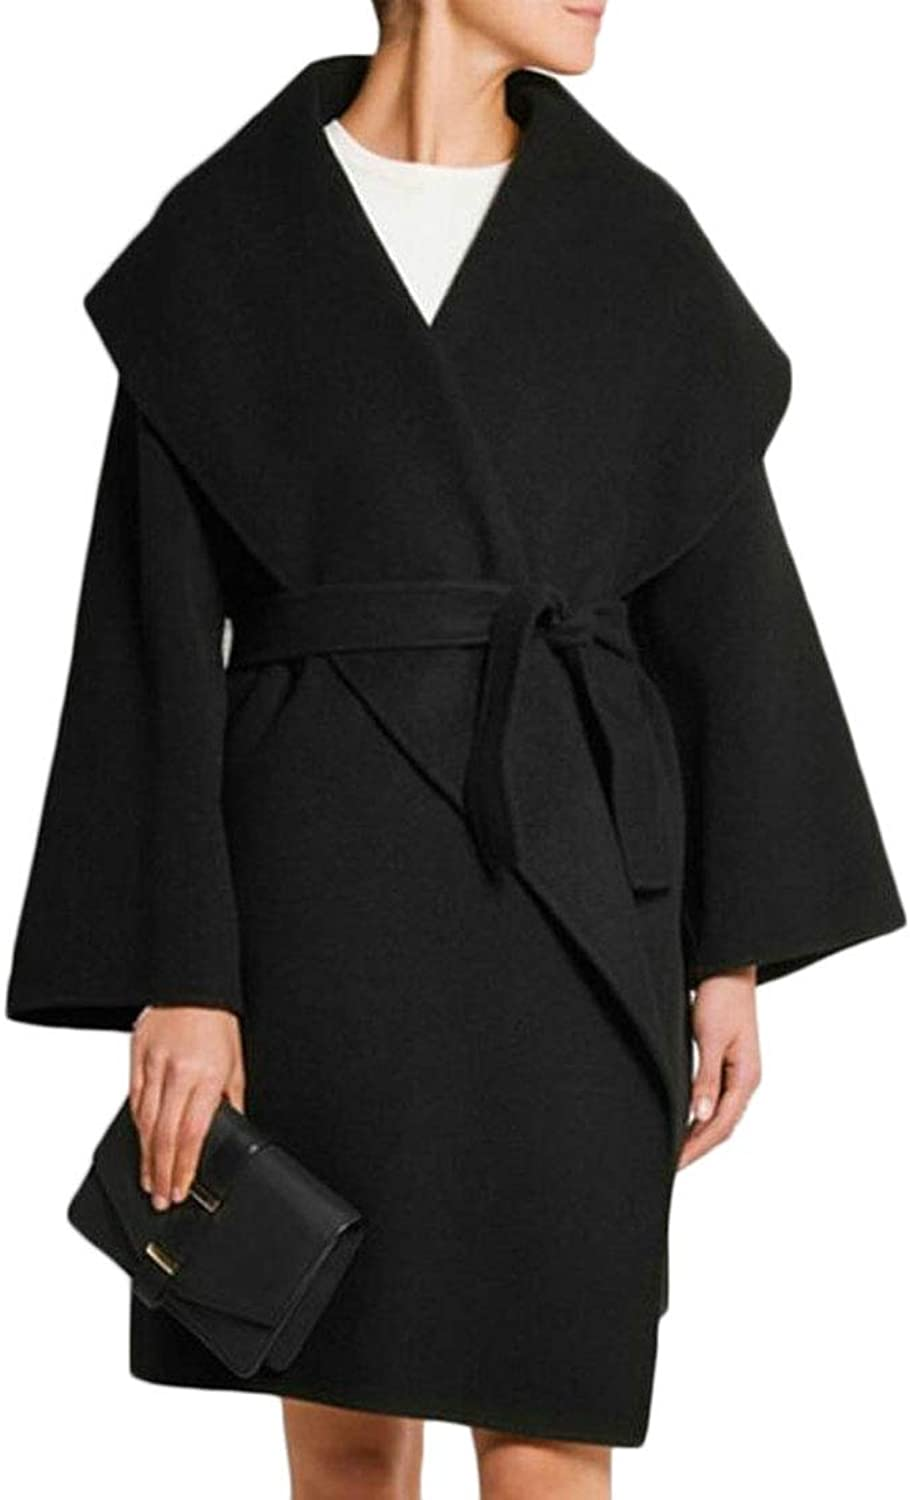 Esast Women Winter Fall Lapel Belted Long Wool Blend Pea Coats Jackets